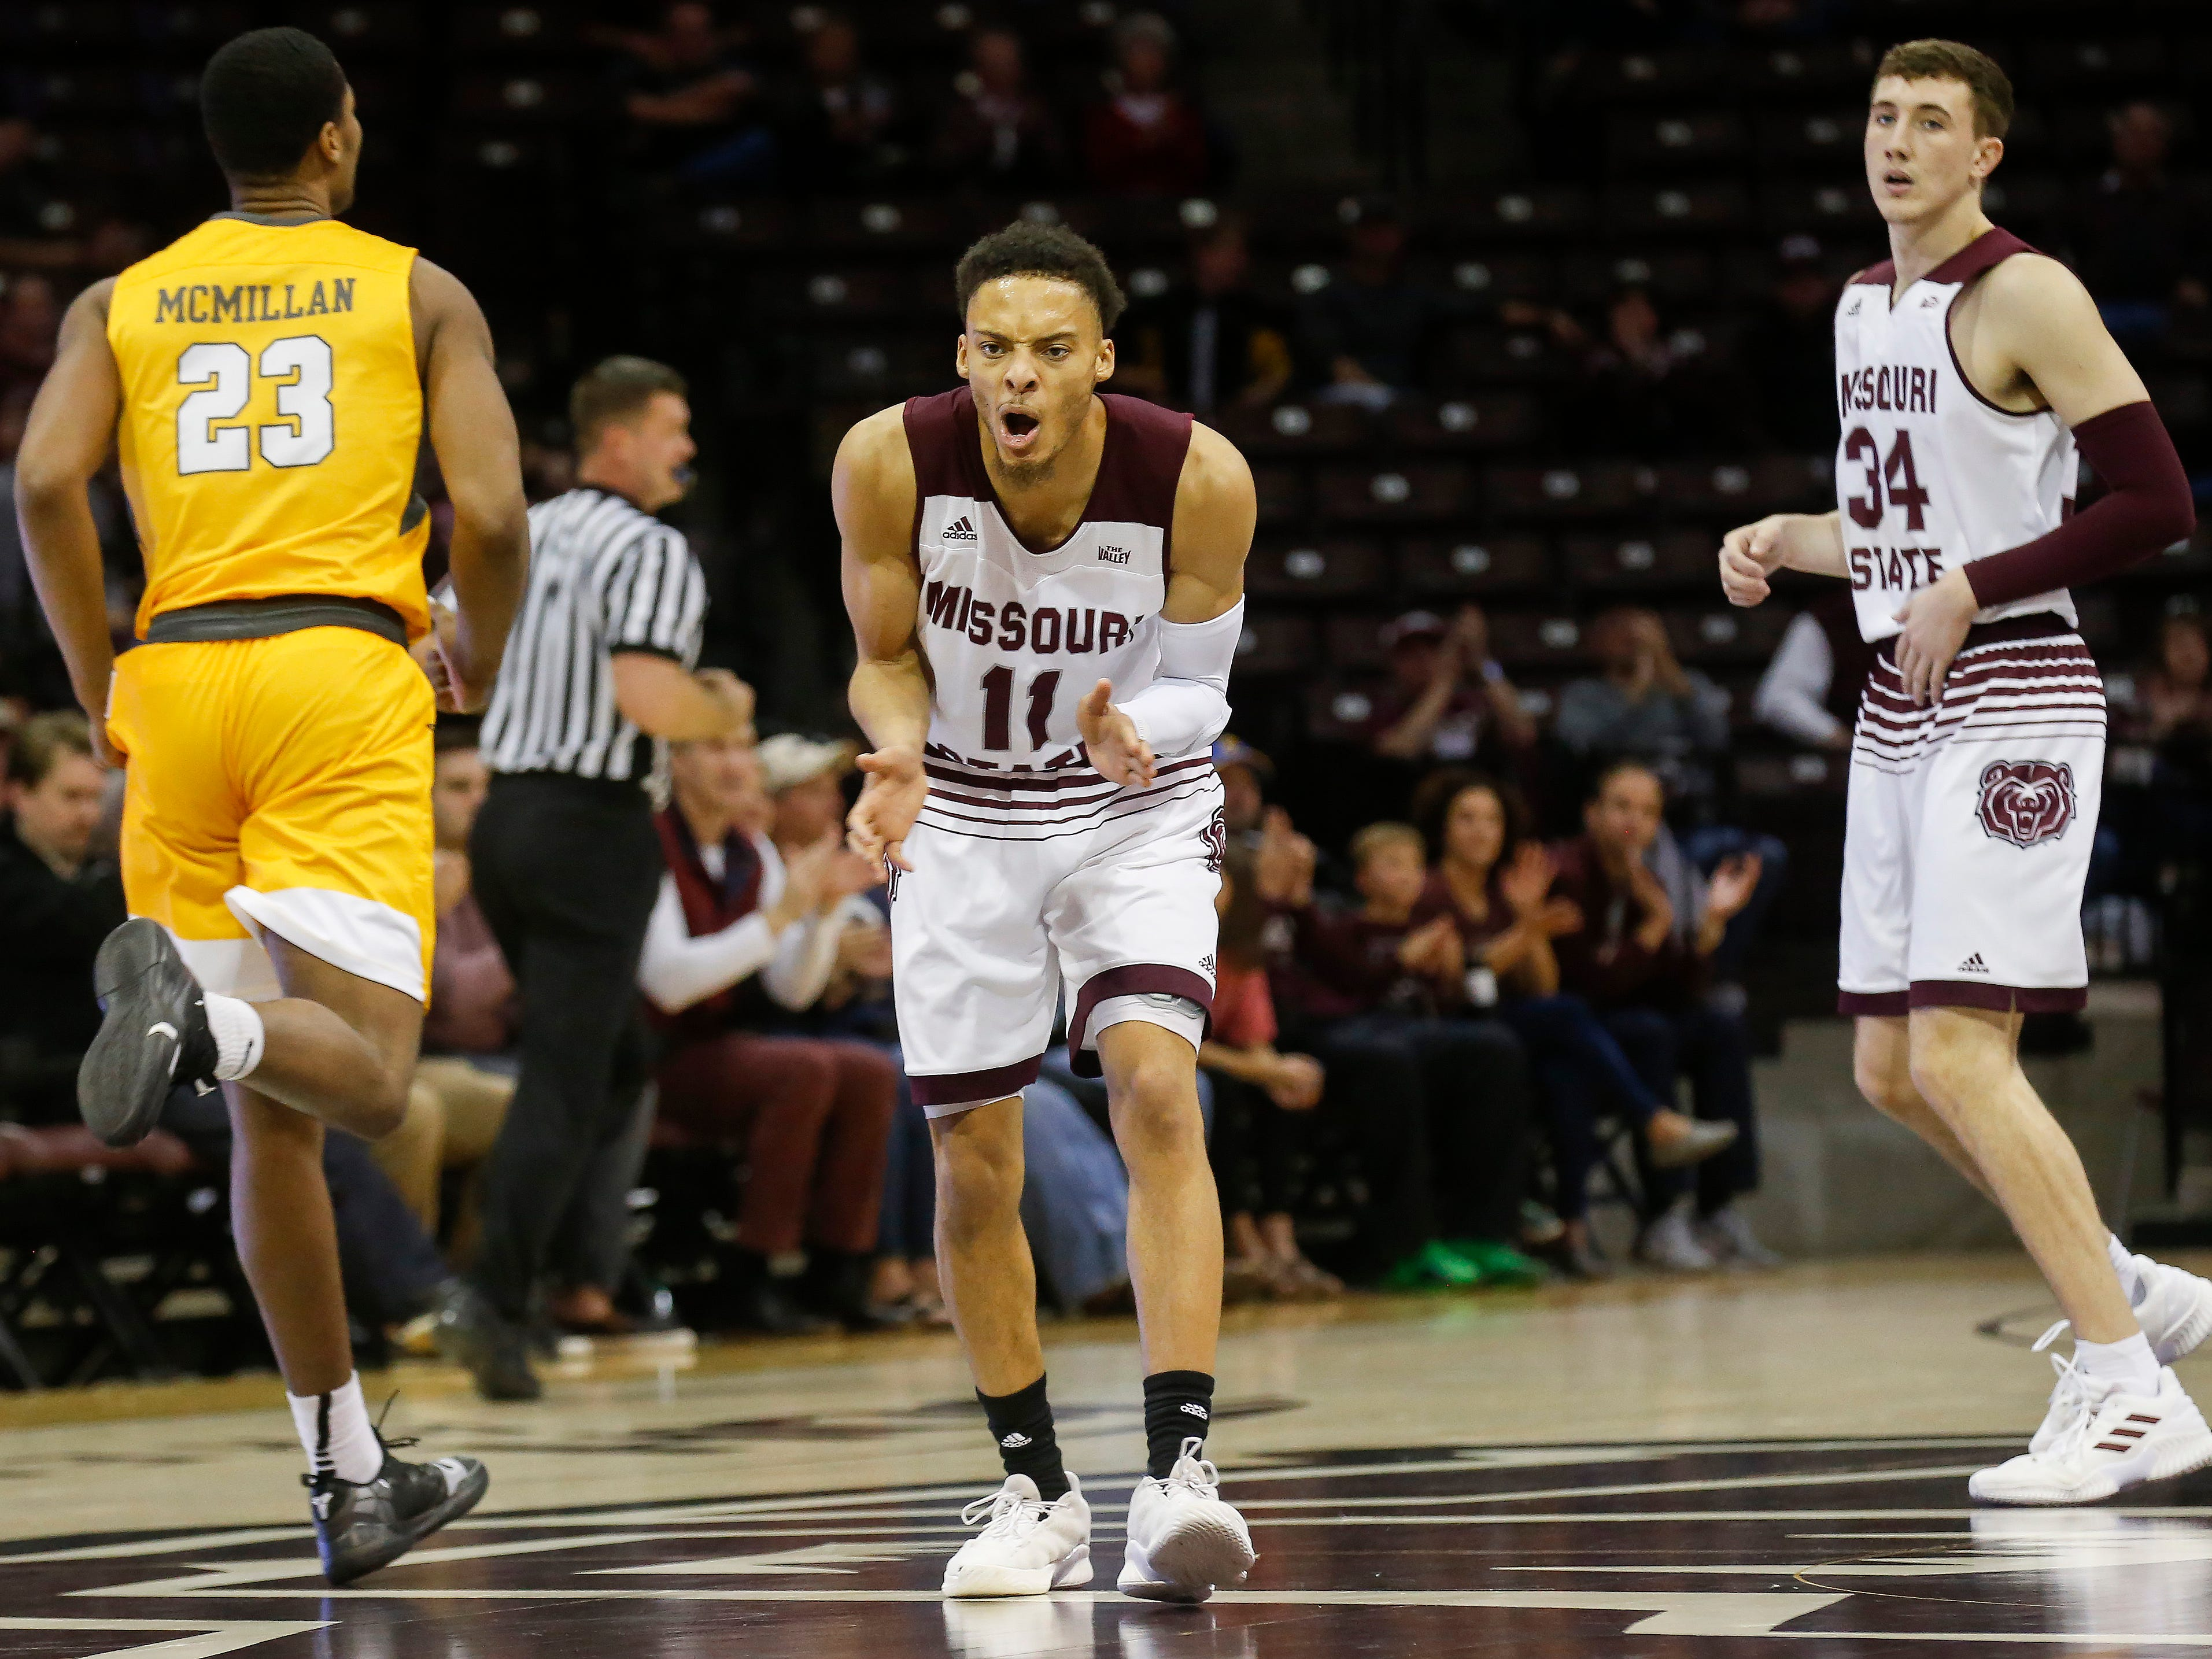 Jarred Dixon, of Missouri State University, encourages his team during the Bears game against Valparaiso at JQH Arena on Saturday, Jan. 5, 2018.